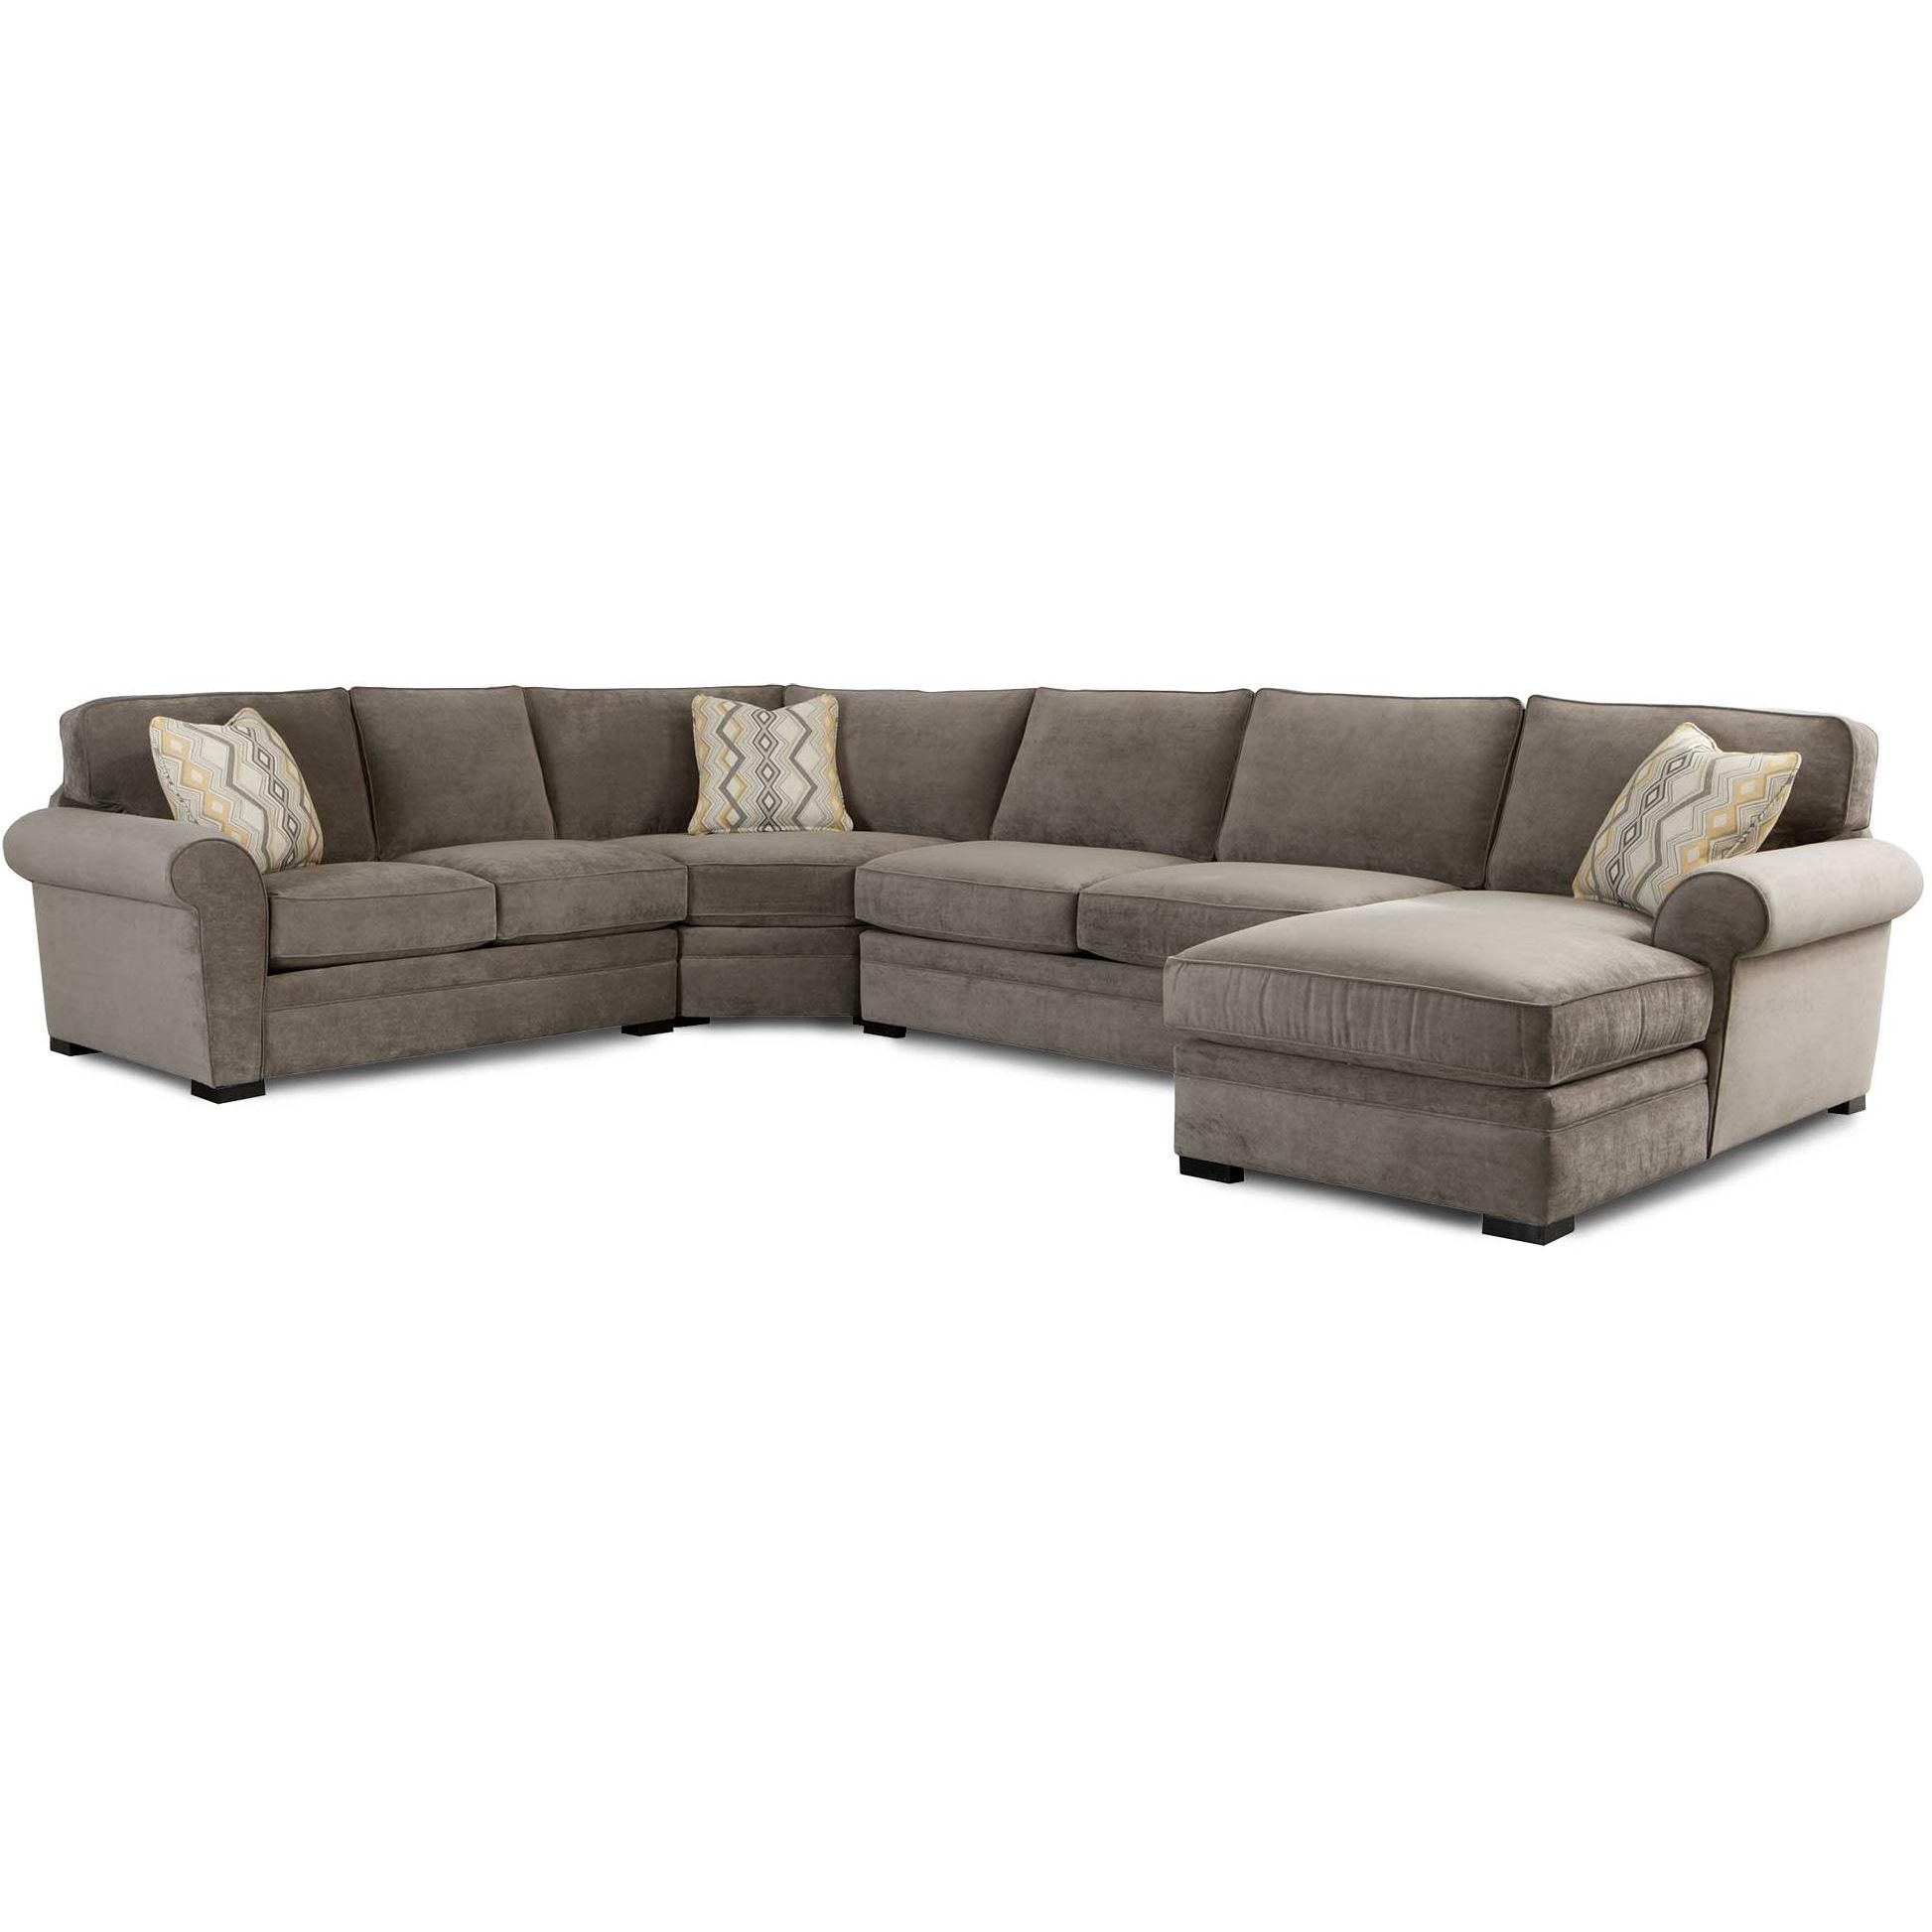 Haverty s Kara Chaise Sofa sale Style Pinterest